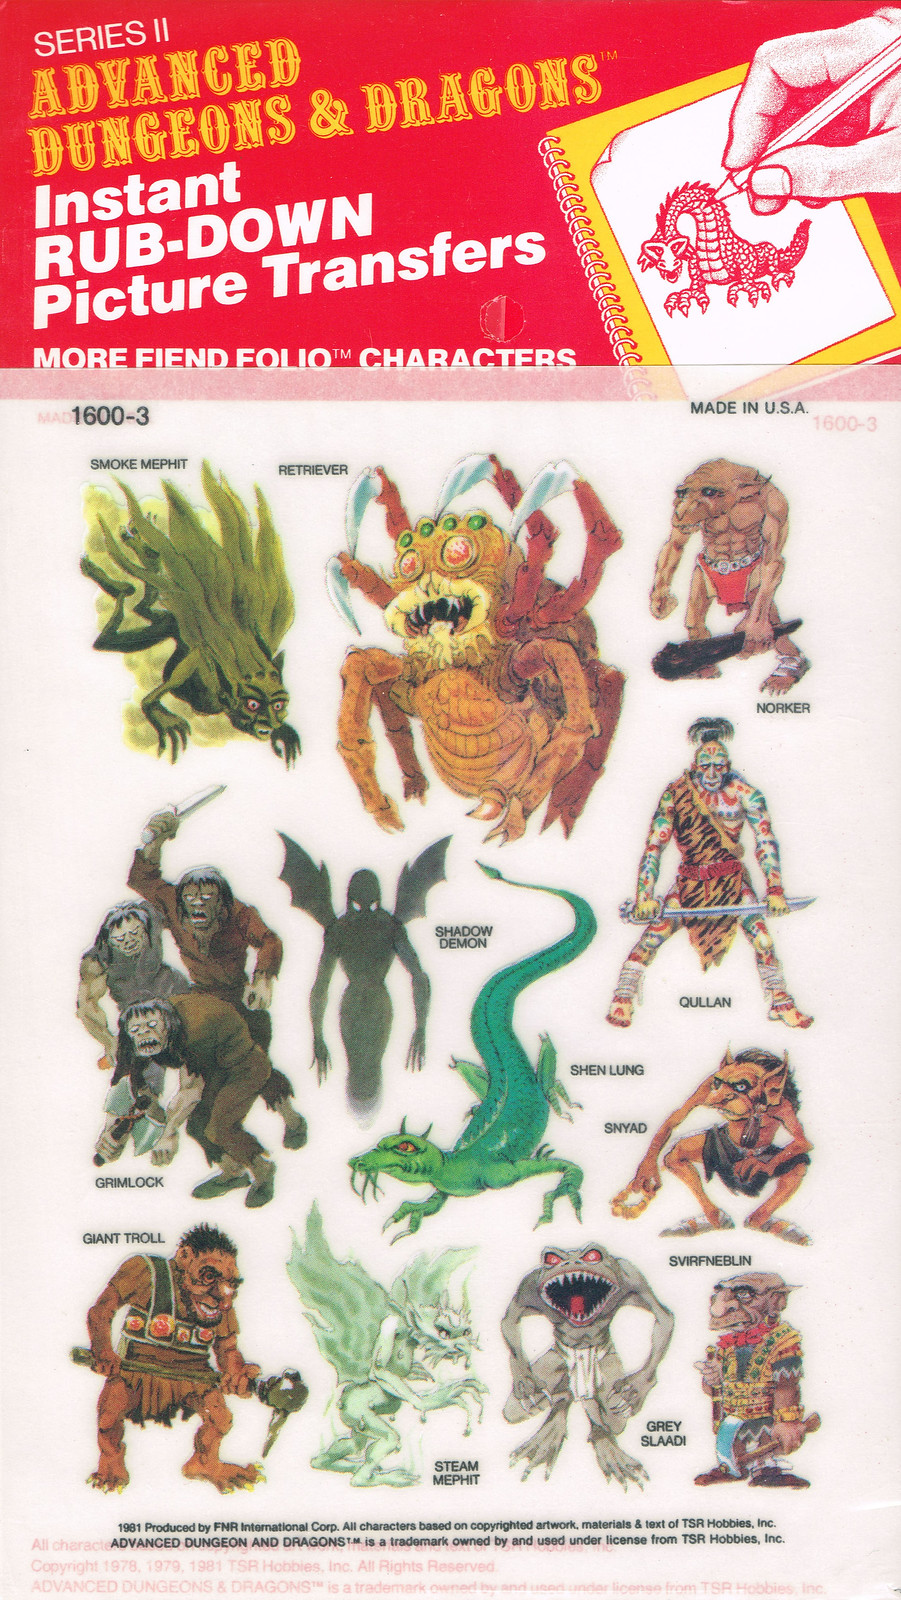 Advanced Dungeons and Dragons Picture Transfers (More Fiend Folio Characters)  Series 2 - 01, 1981